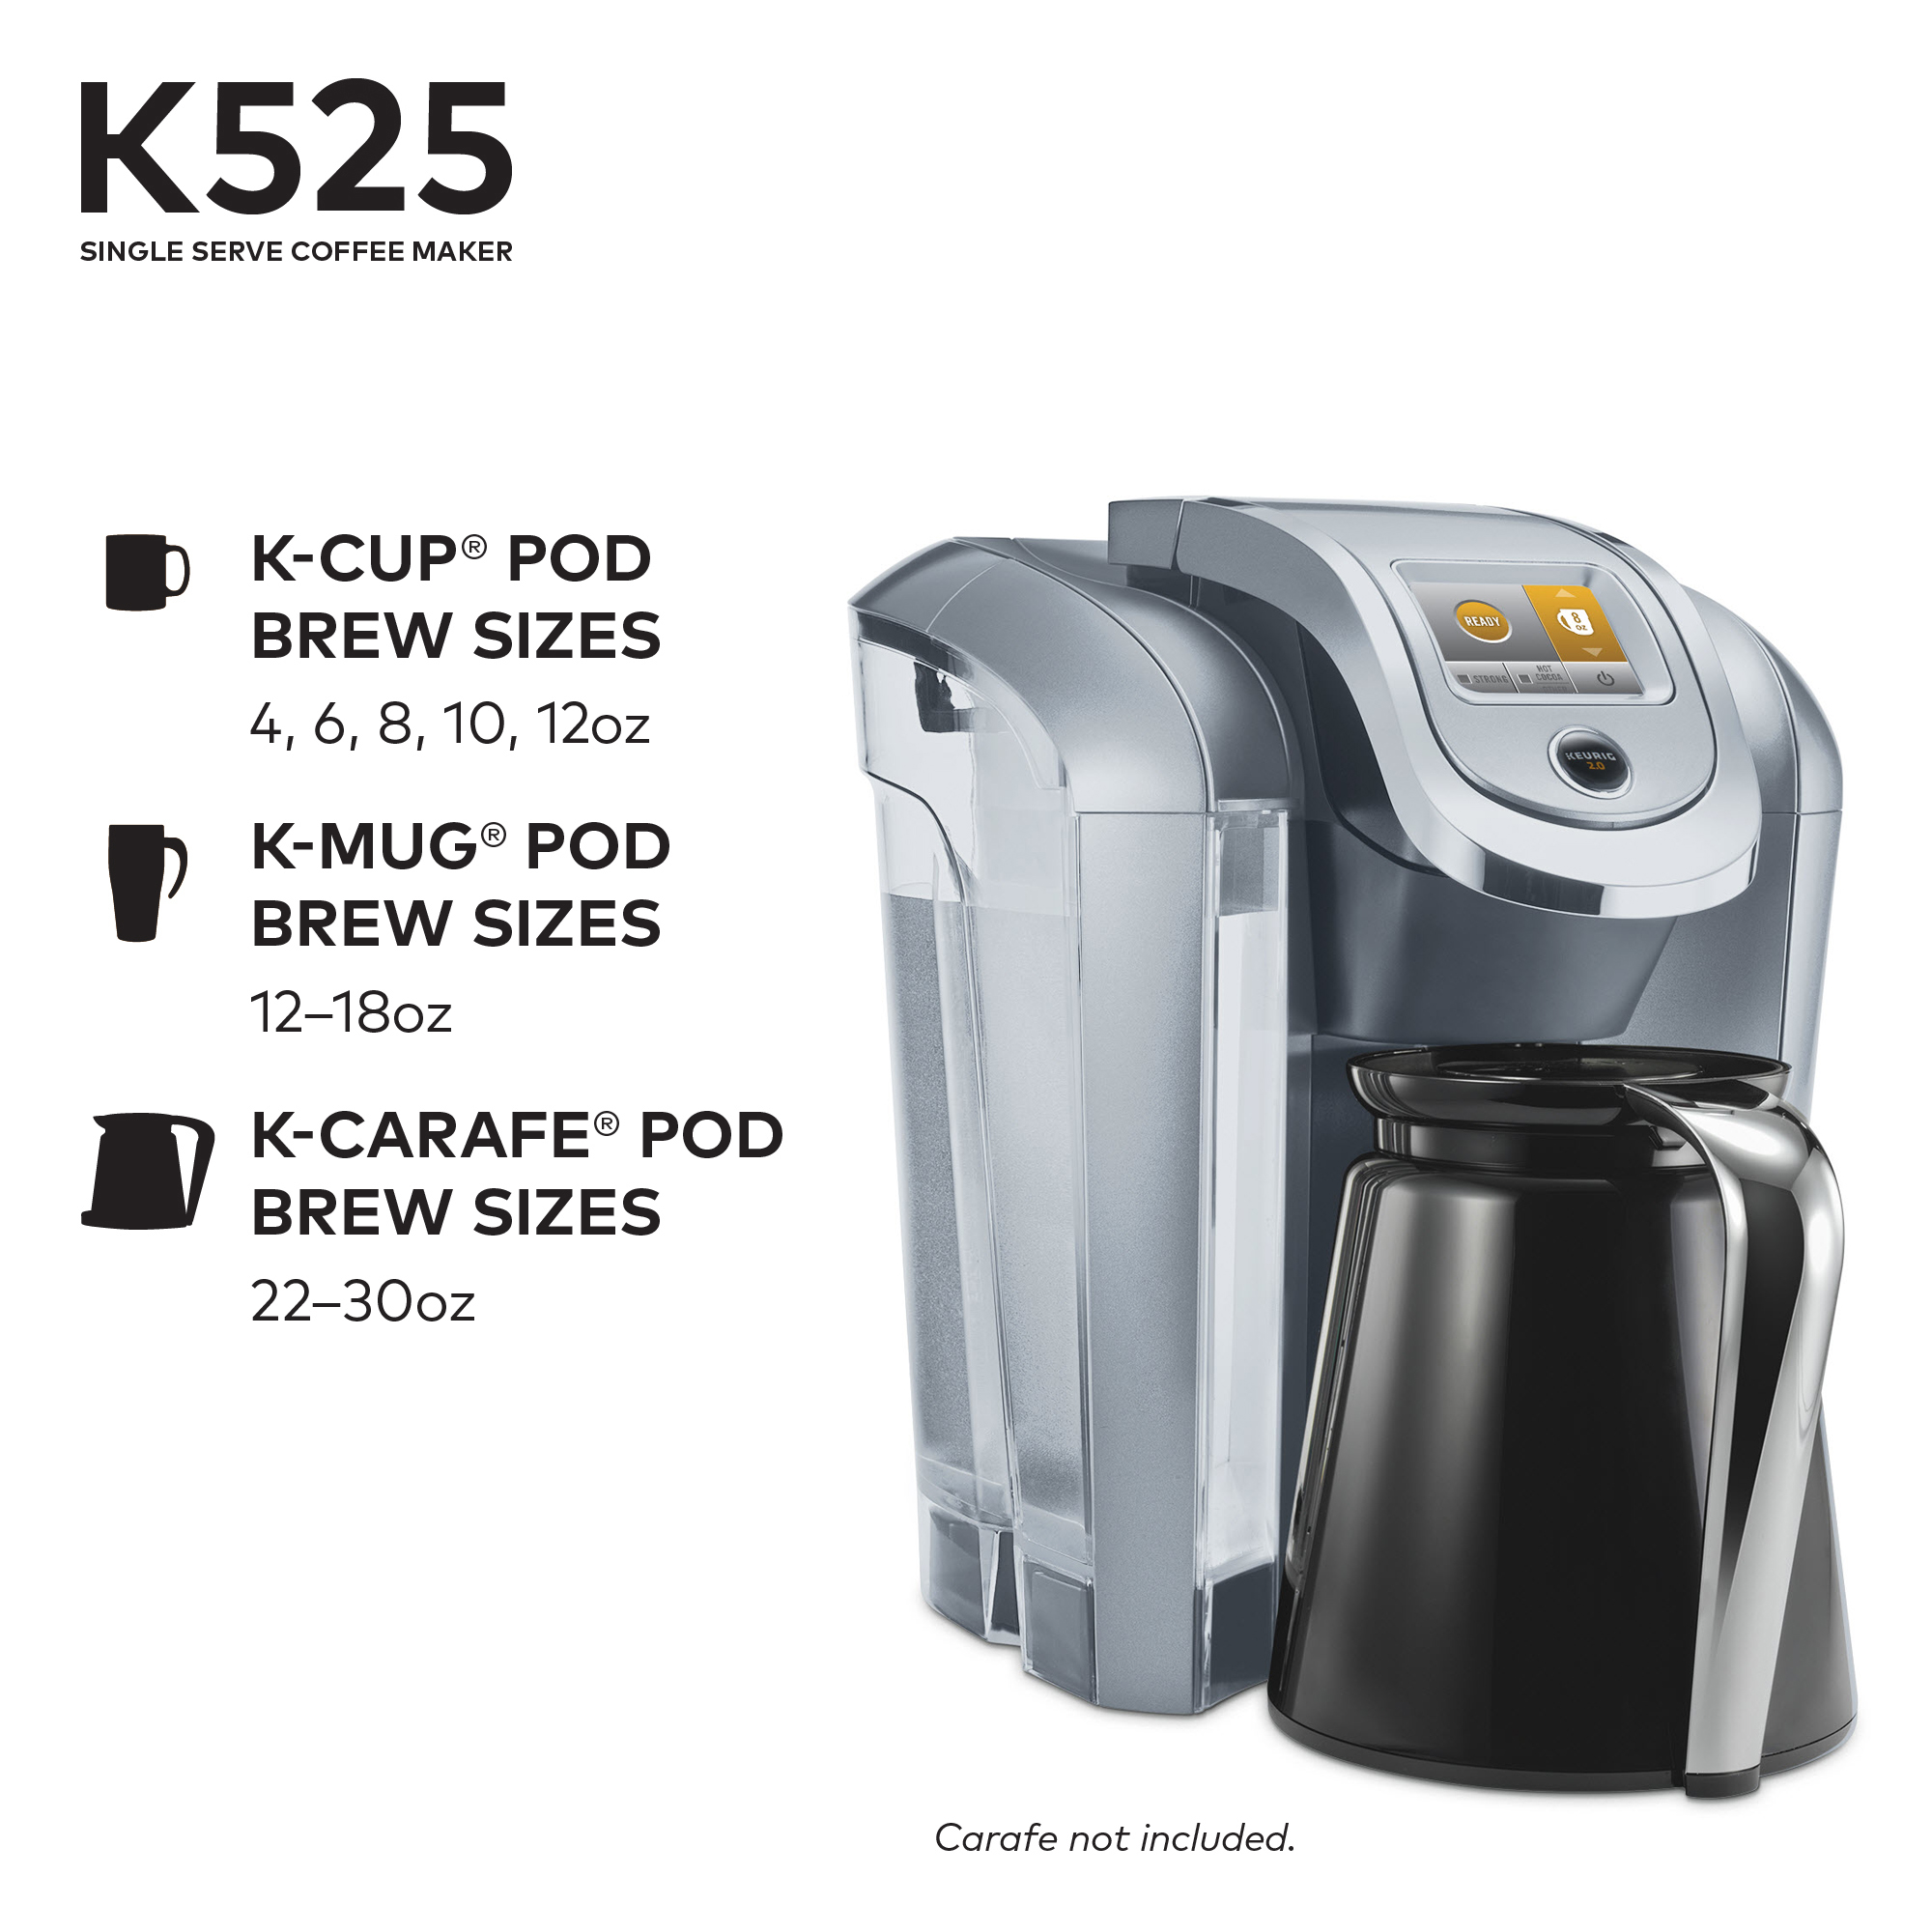 Keurig 2.0 K525 Features